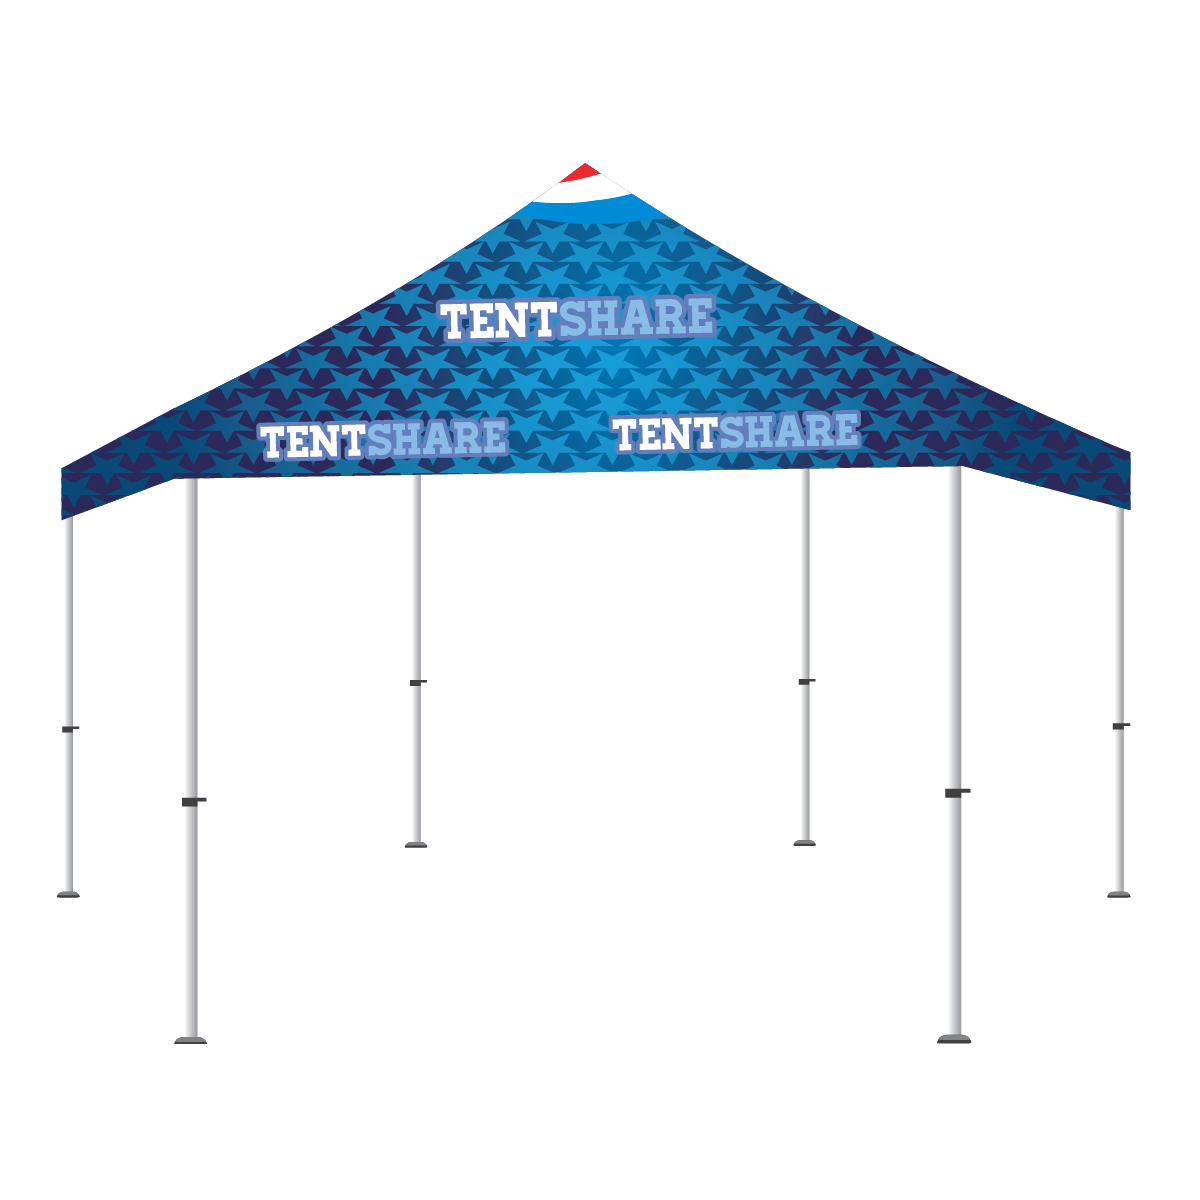 Popup Tent 20x20 Foot Hexagon Custom Canopy Builder  sc 1 st  TentShare & Popup Tent 20x20 Foot Hexagon Custom Canopy Builder | Tent Share ...